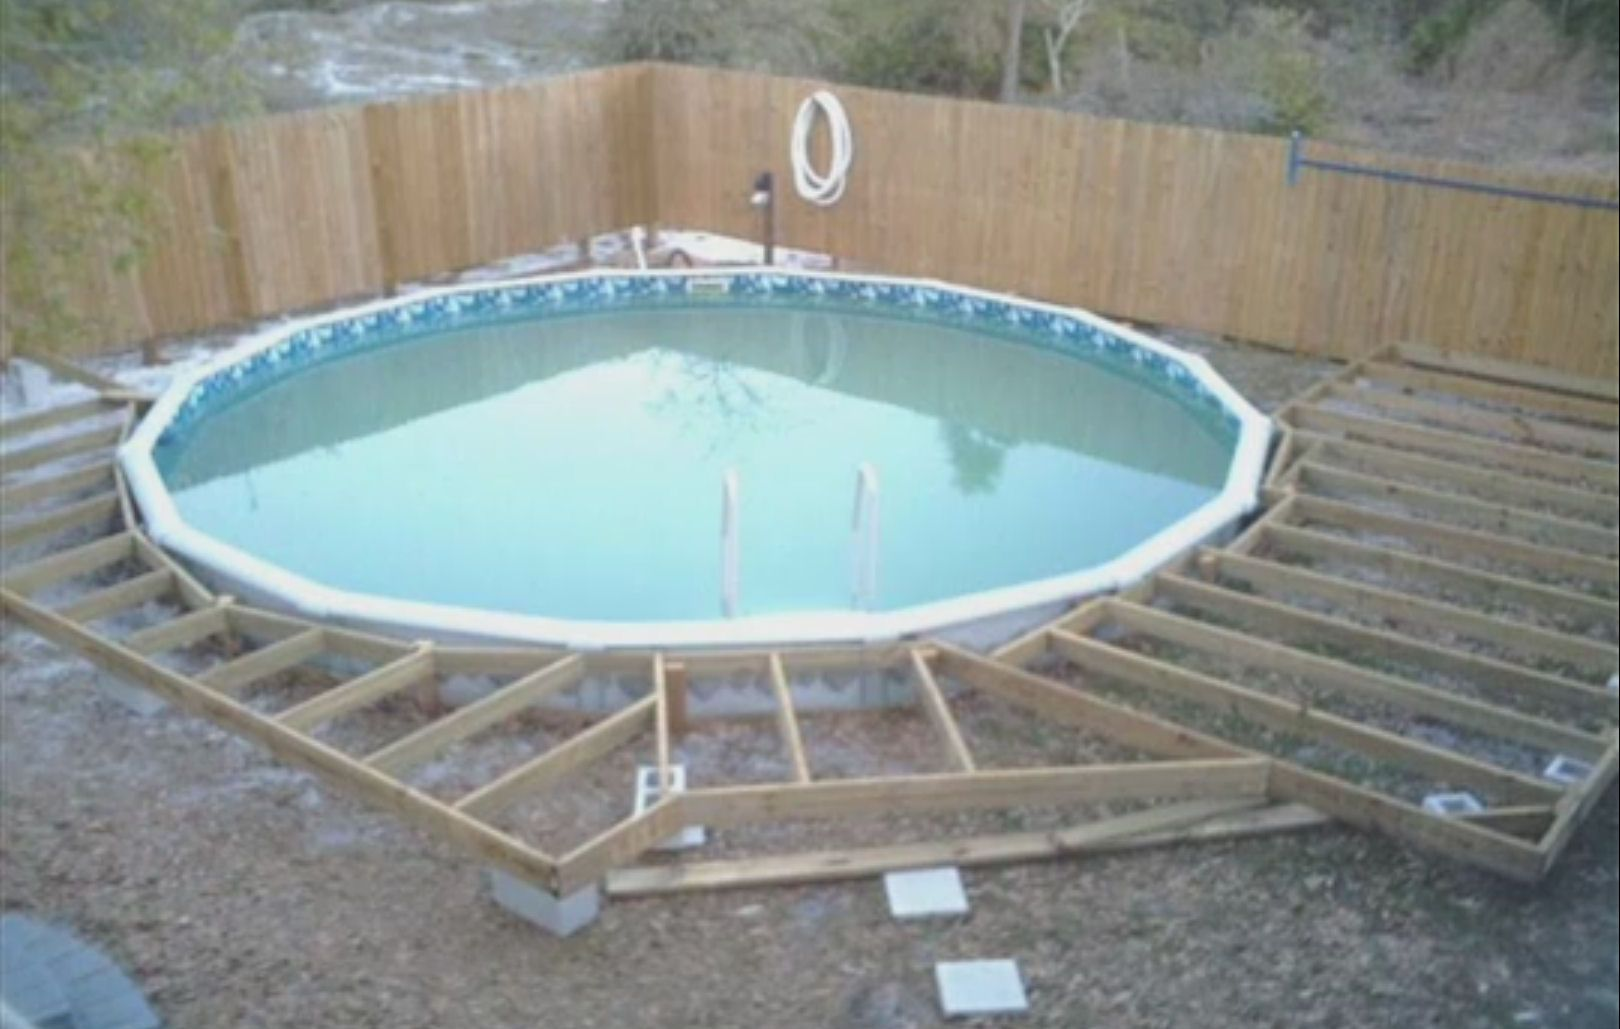 How To Save $20,000 When Buying And Installing A 27 30u2032 Inground Pool